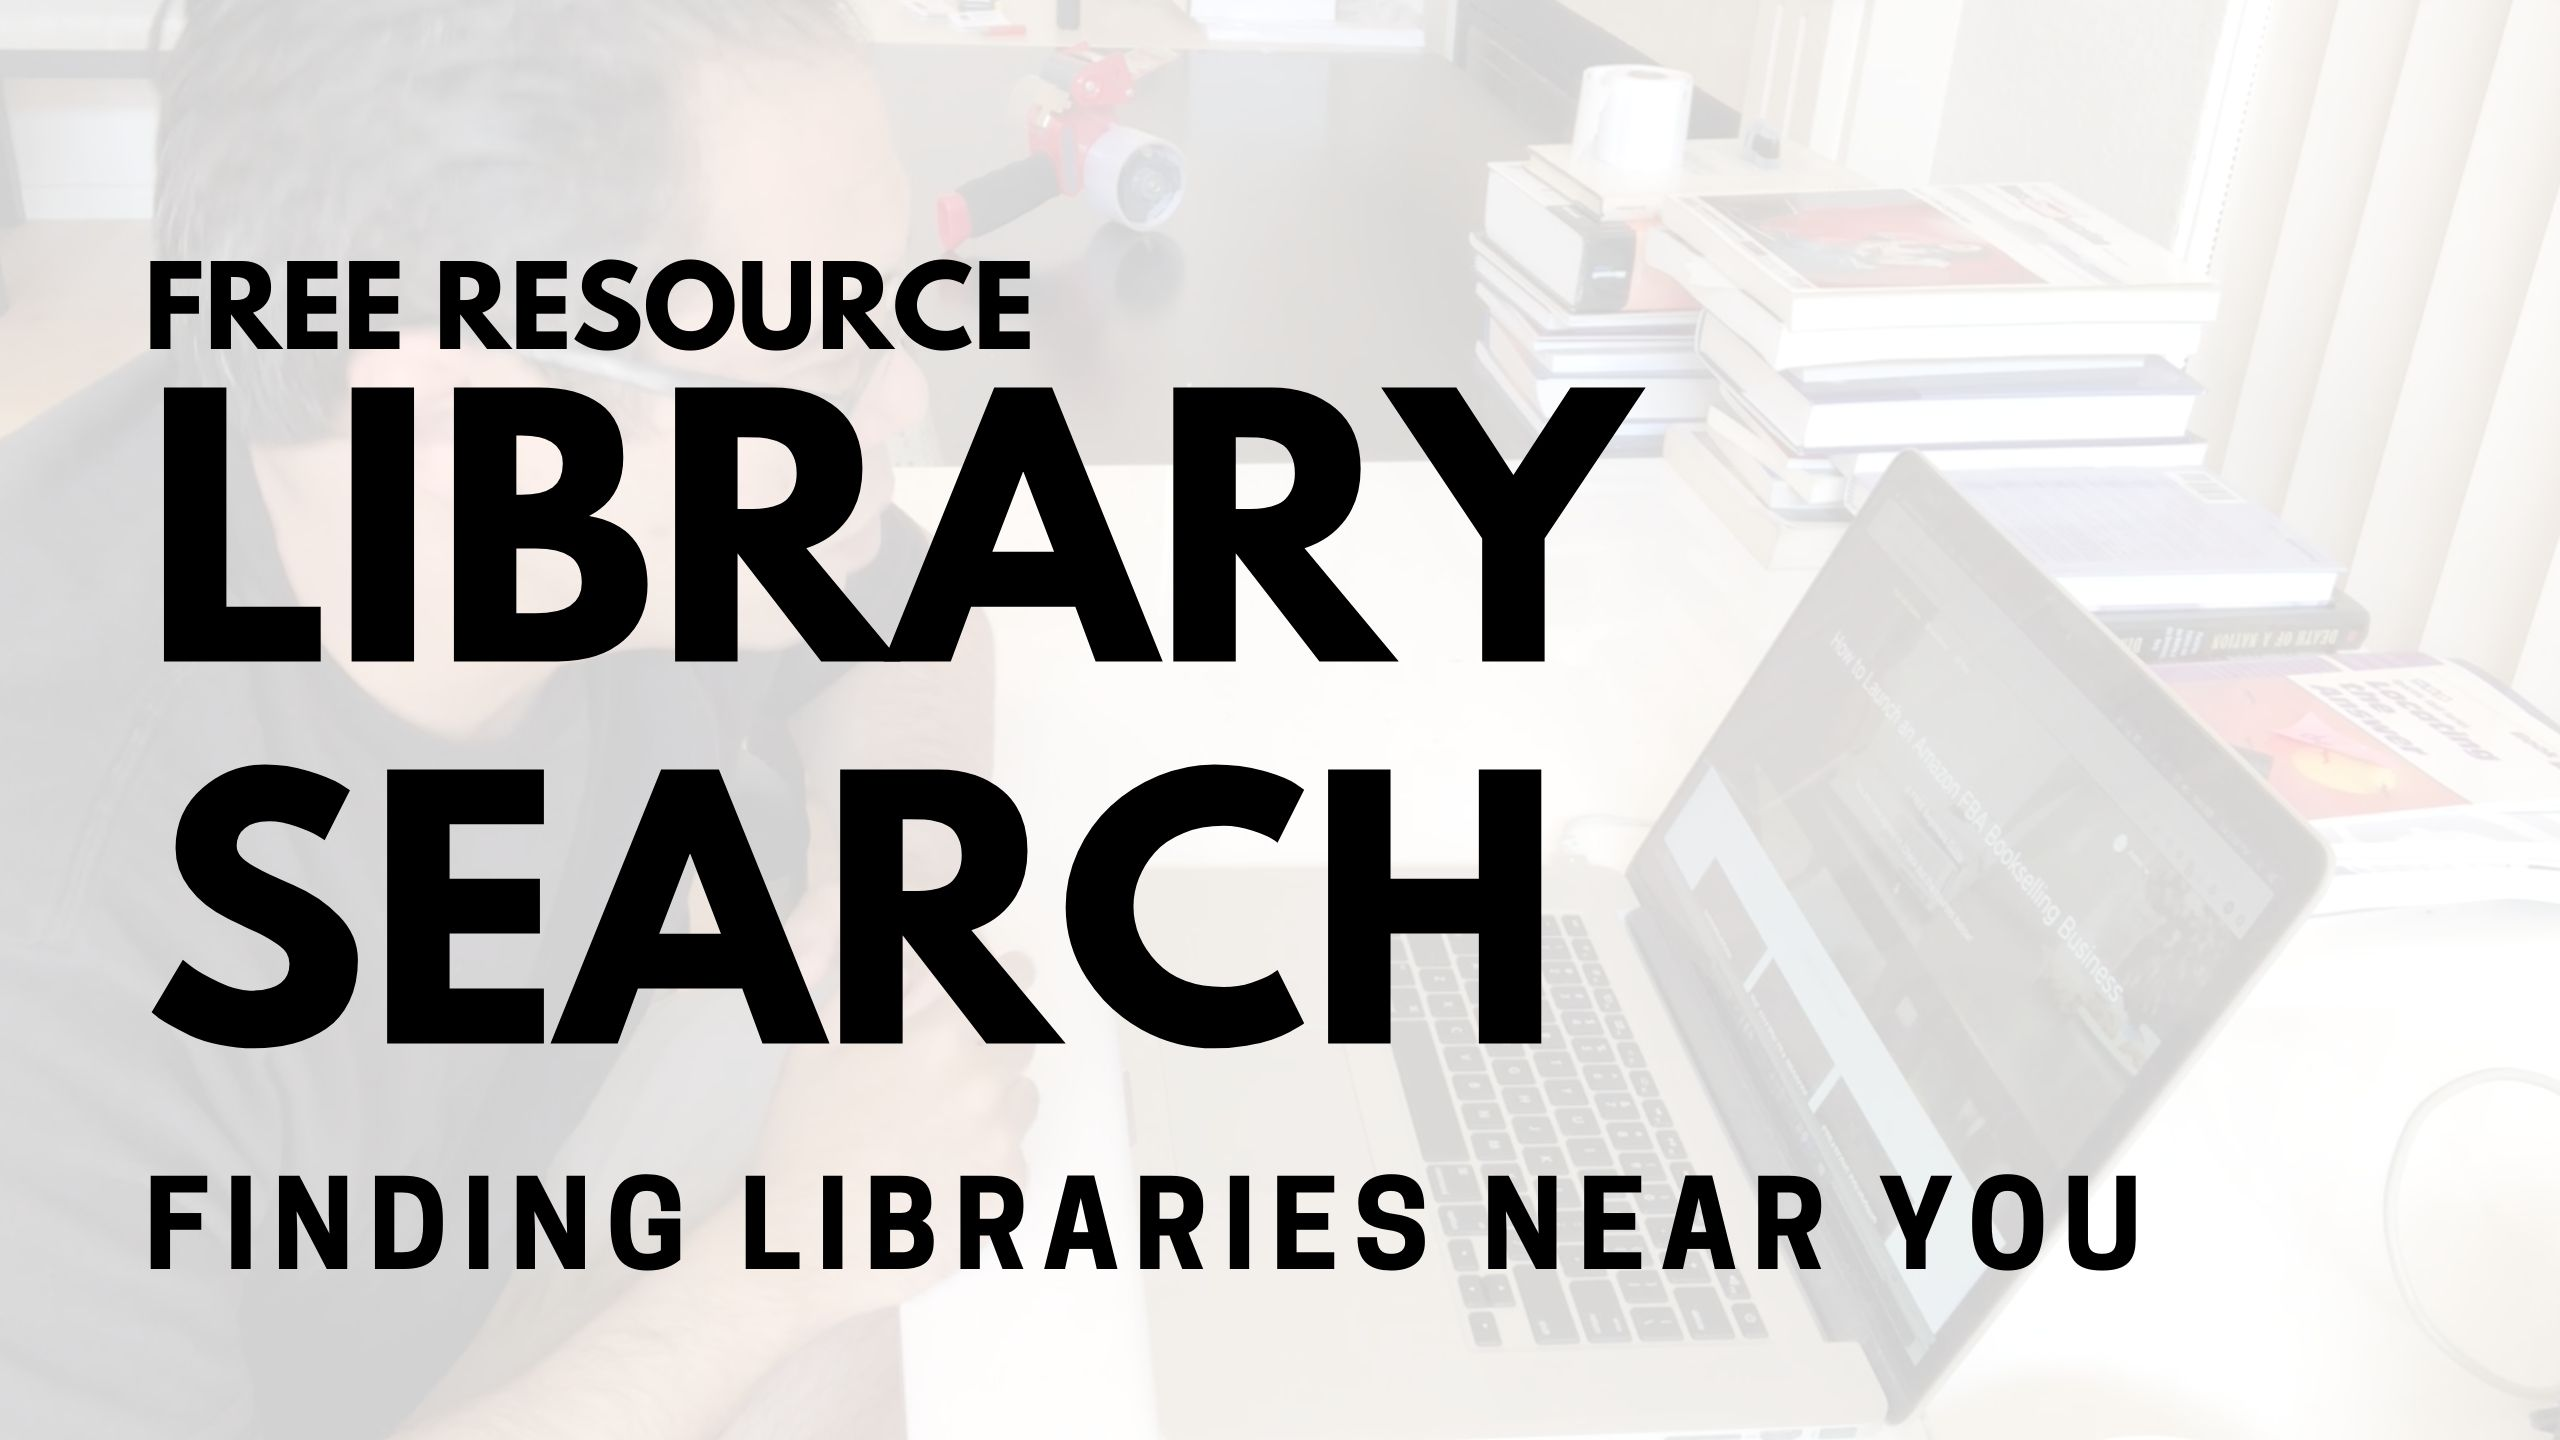 Finding The Nearest Library Near You